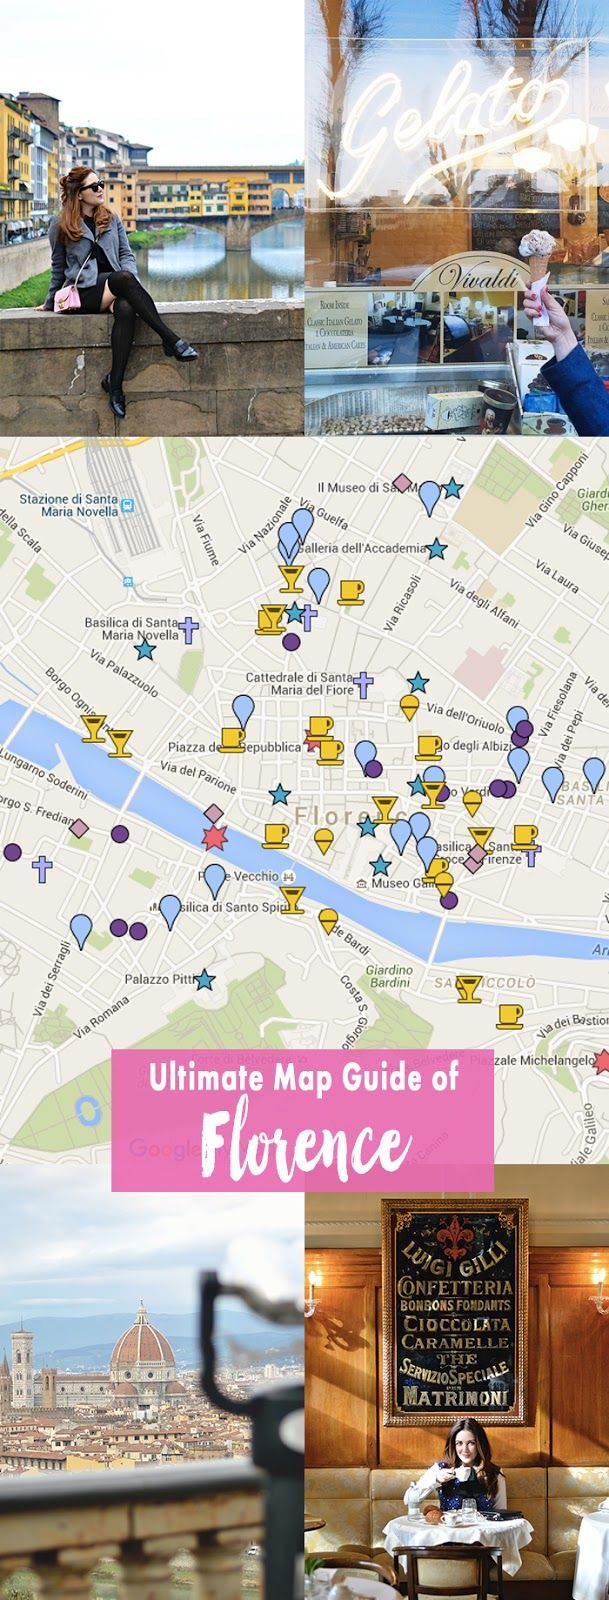 History In High Heels: History in High Heel's (Ultimate) Florence Map Guide